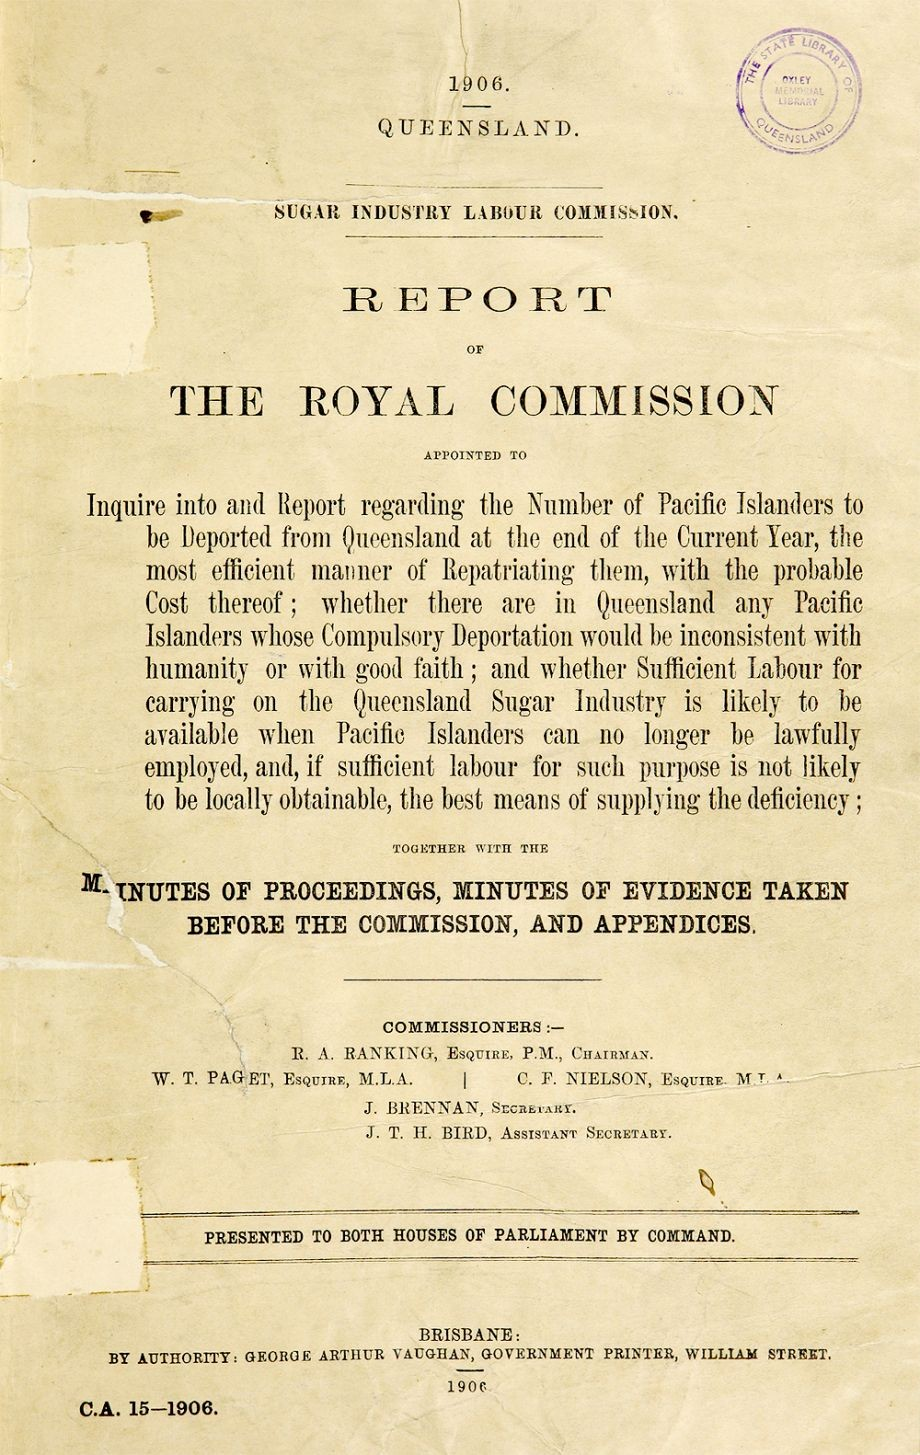 1906 Sugar Industry Labour Commission Report of the Royal Commission appointed to inquire into and report regarding the number of Pacific Islanders R A Ranking Robert Archibald 1843-1912 Brisbane  George Arthur Vaughan Government Printer 1906